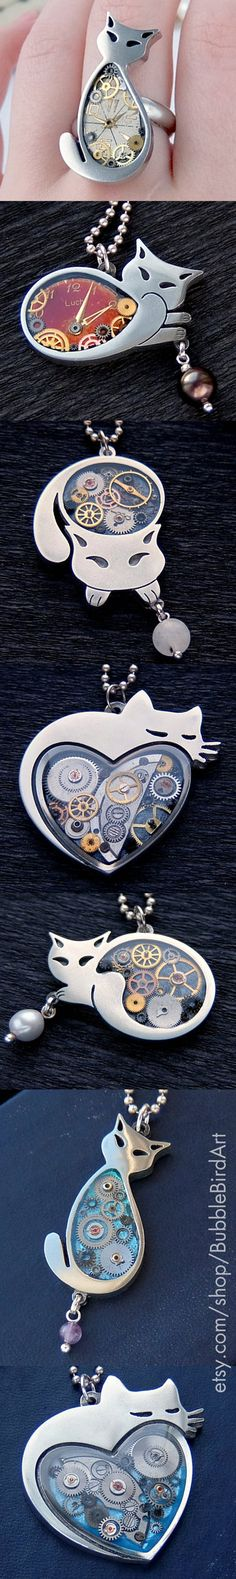 Close-ups of some of steampunk cat pendants by Bubble Bird Art